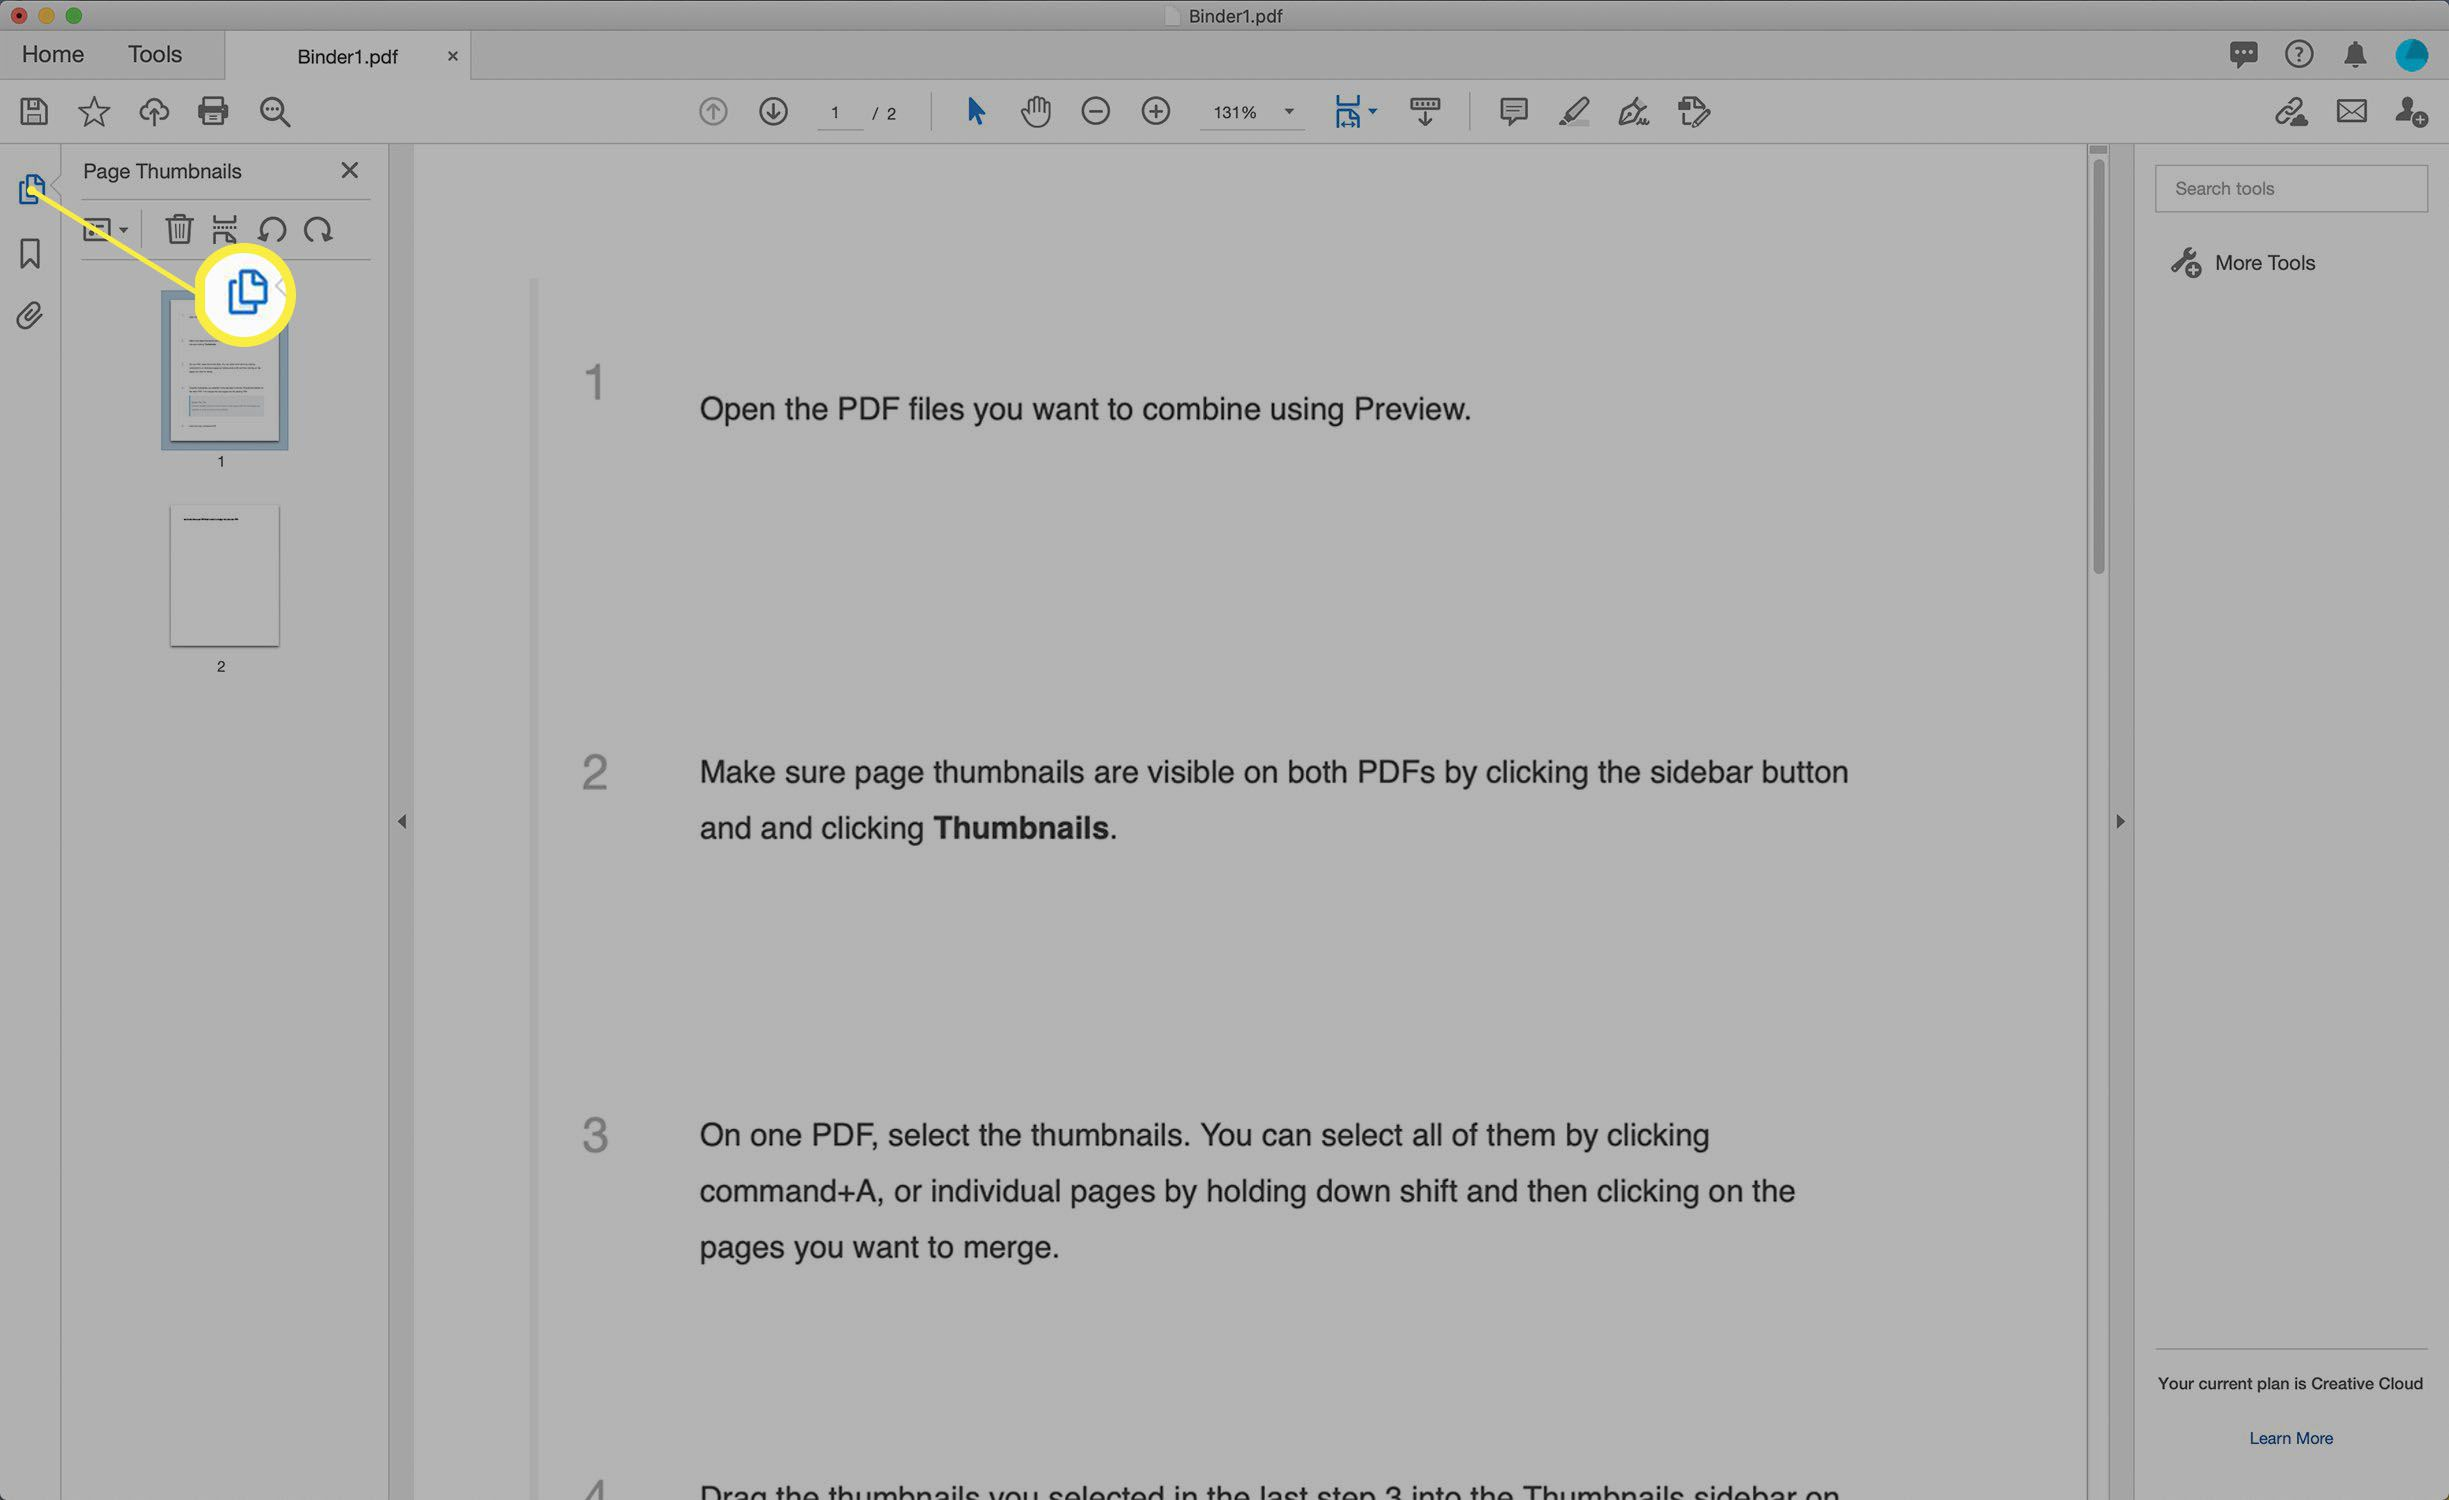 Screenshot of the Page Thumbnails view of a PDF in Adobe Acrobat.